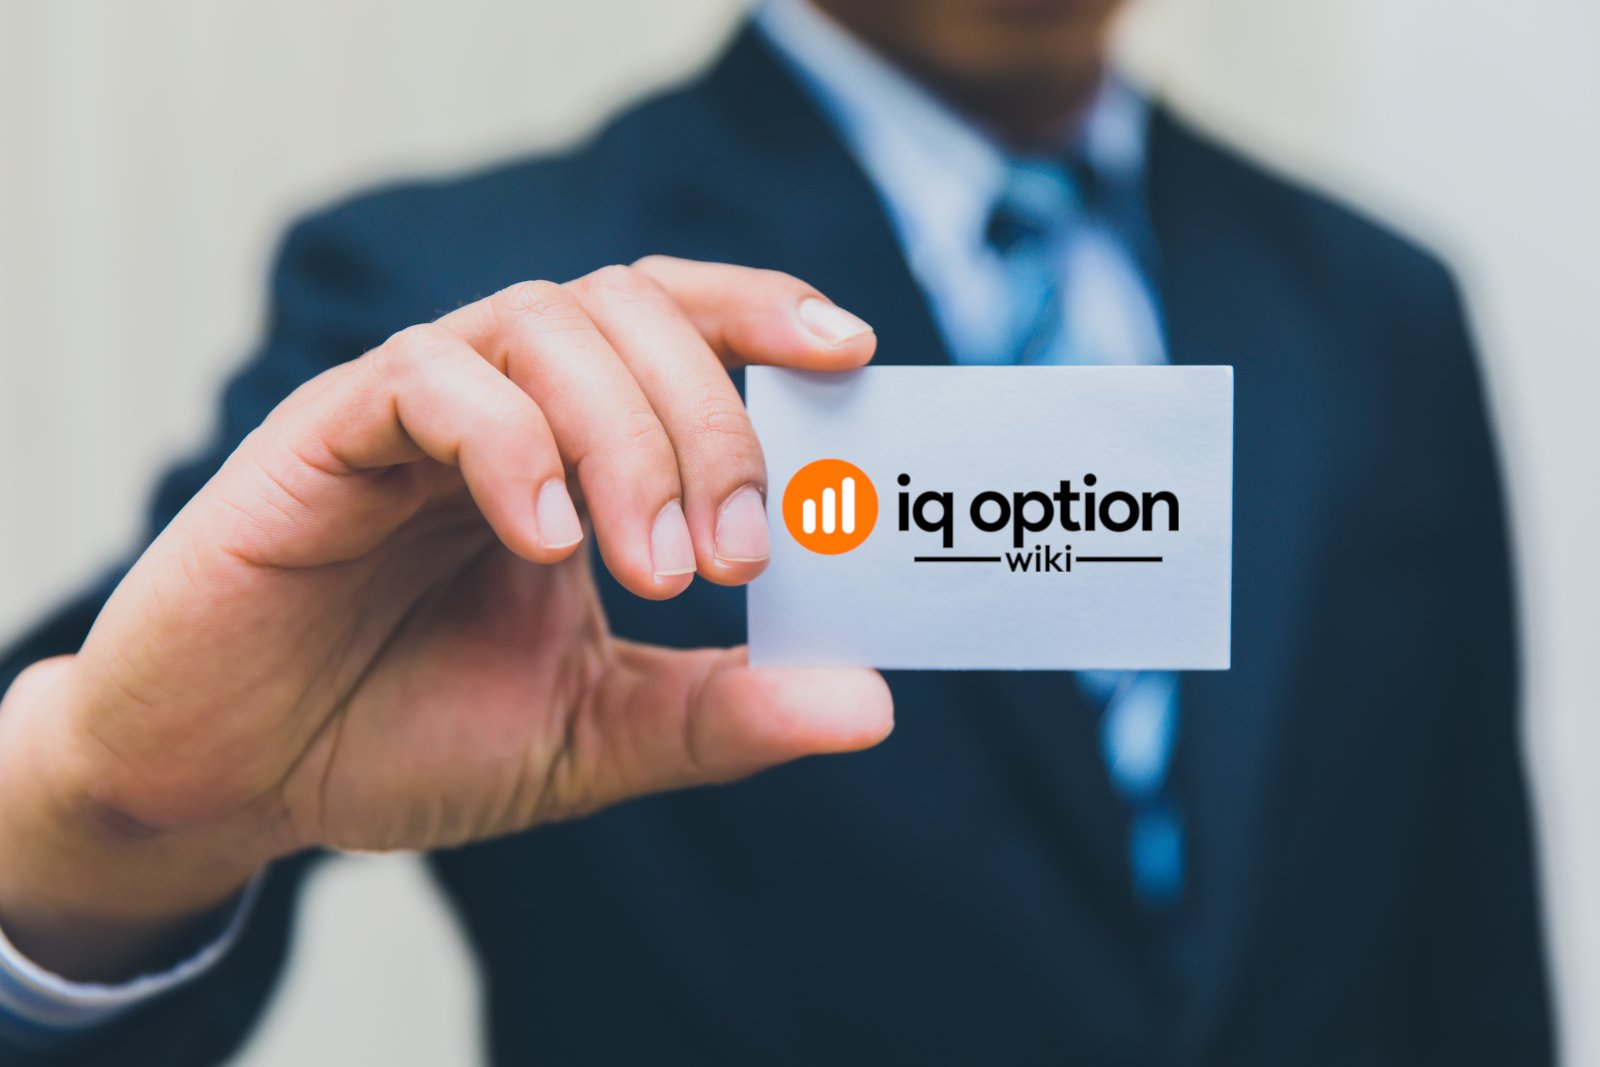 être vip à iq options